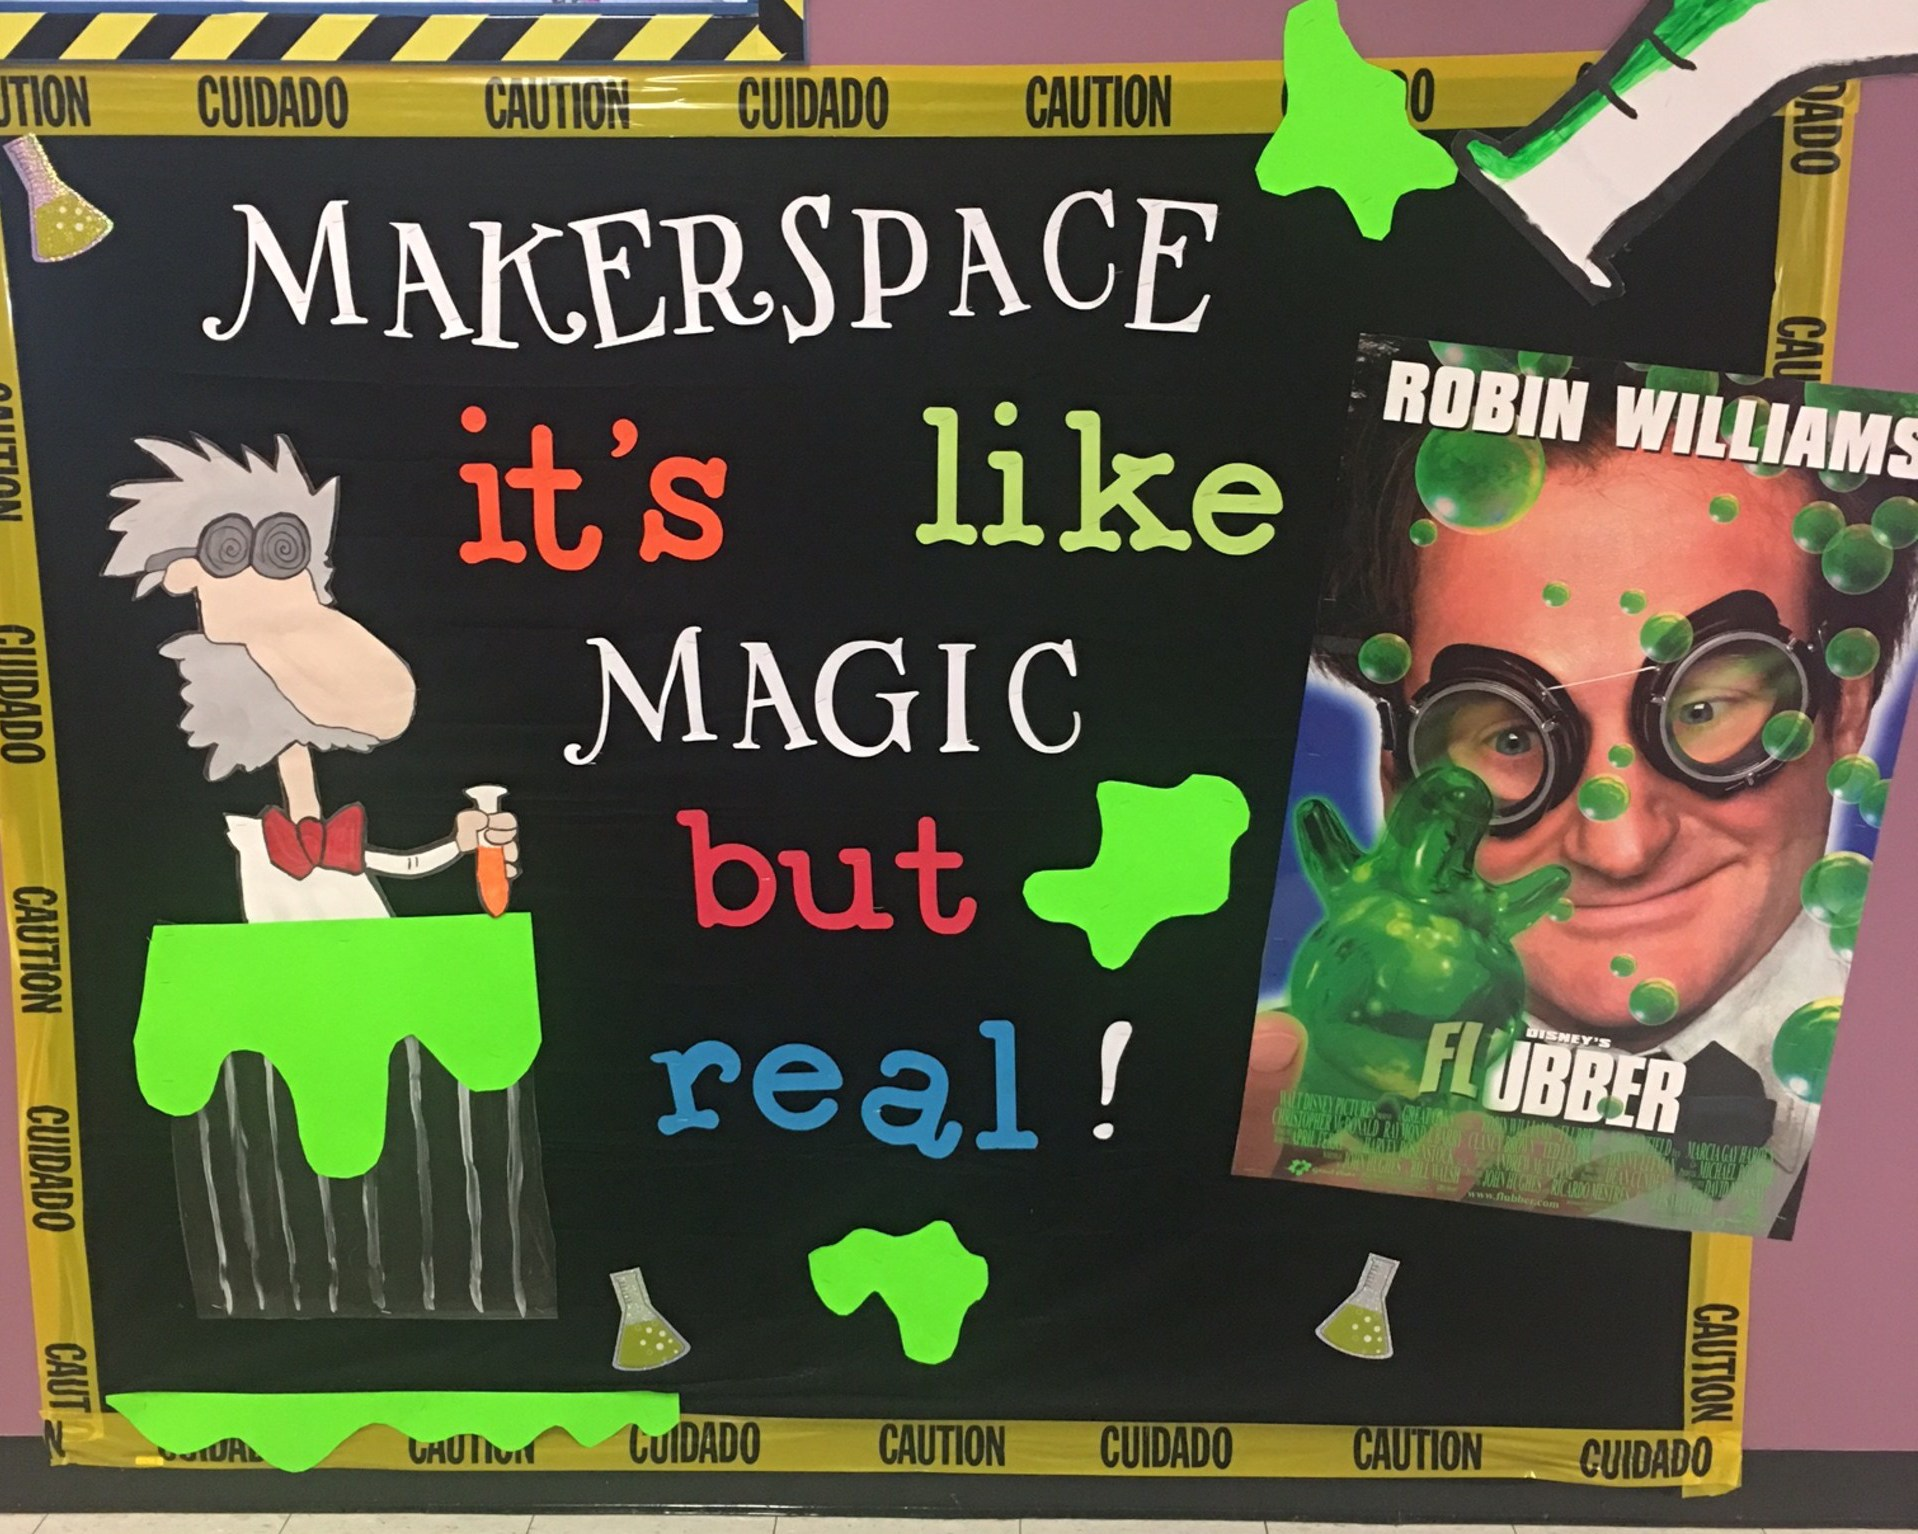 Makerspace is like magic, but it's real!